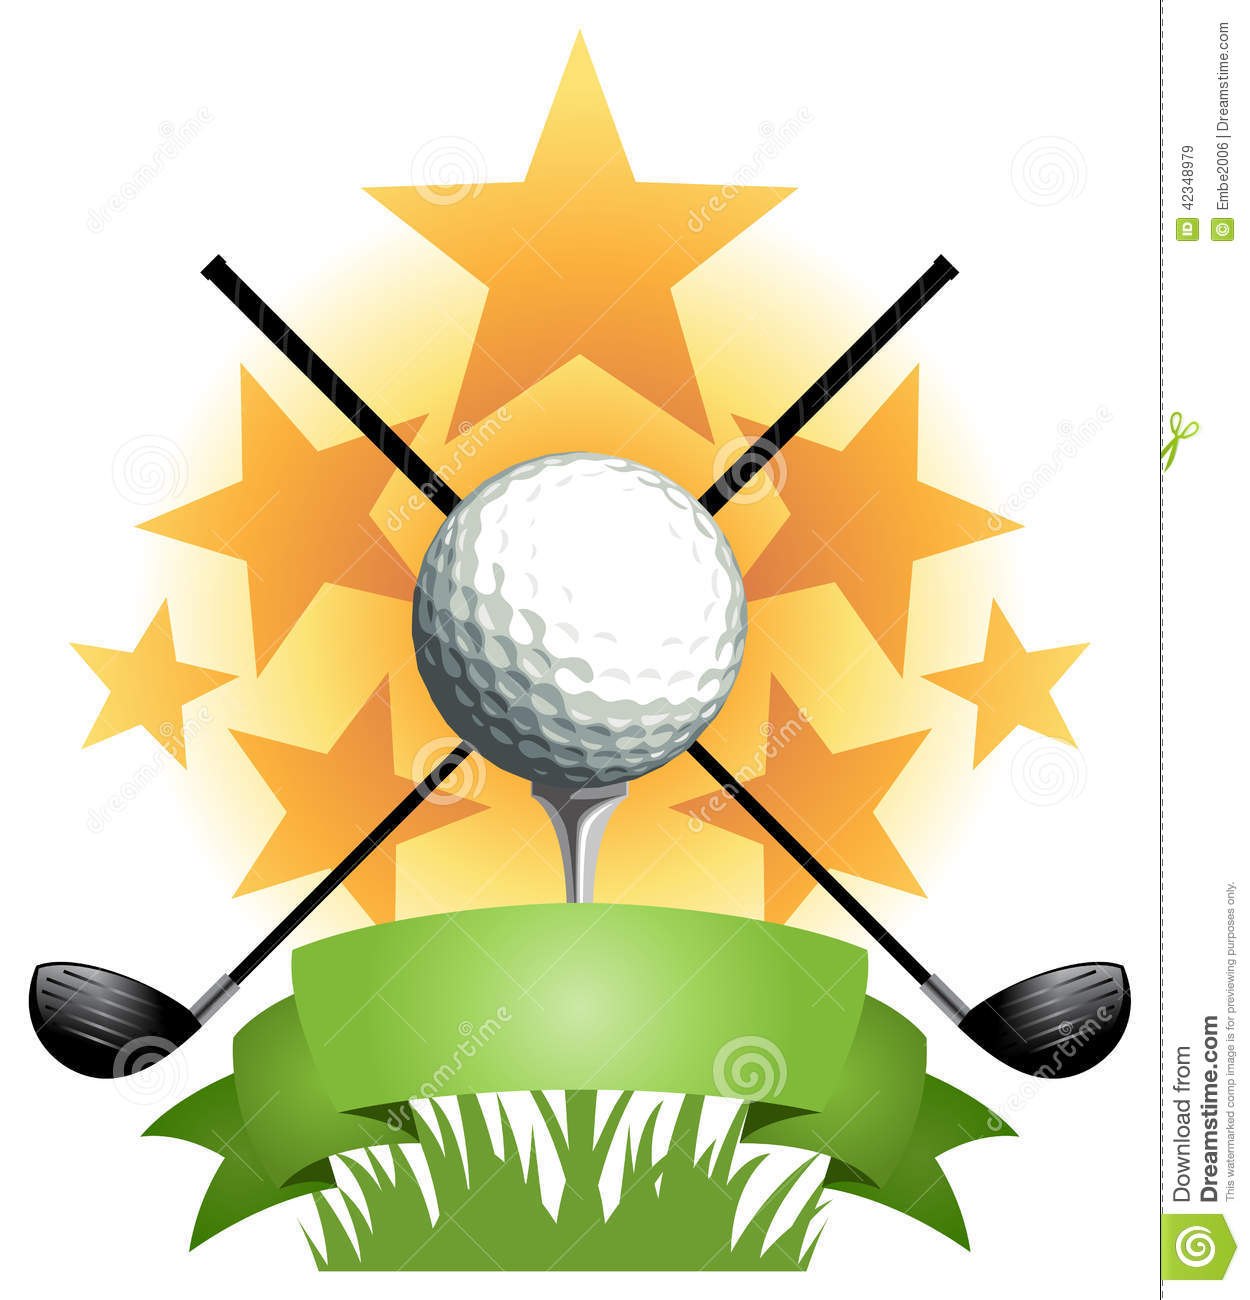 Golf Banner stock vector. Illustration of vector, cross.